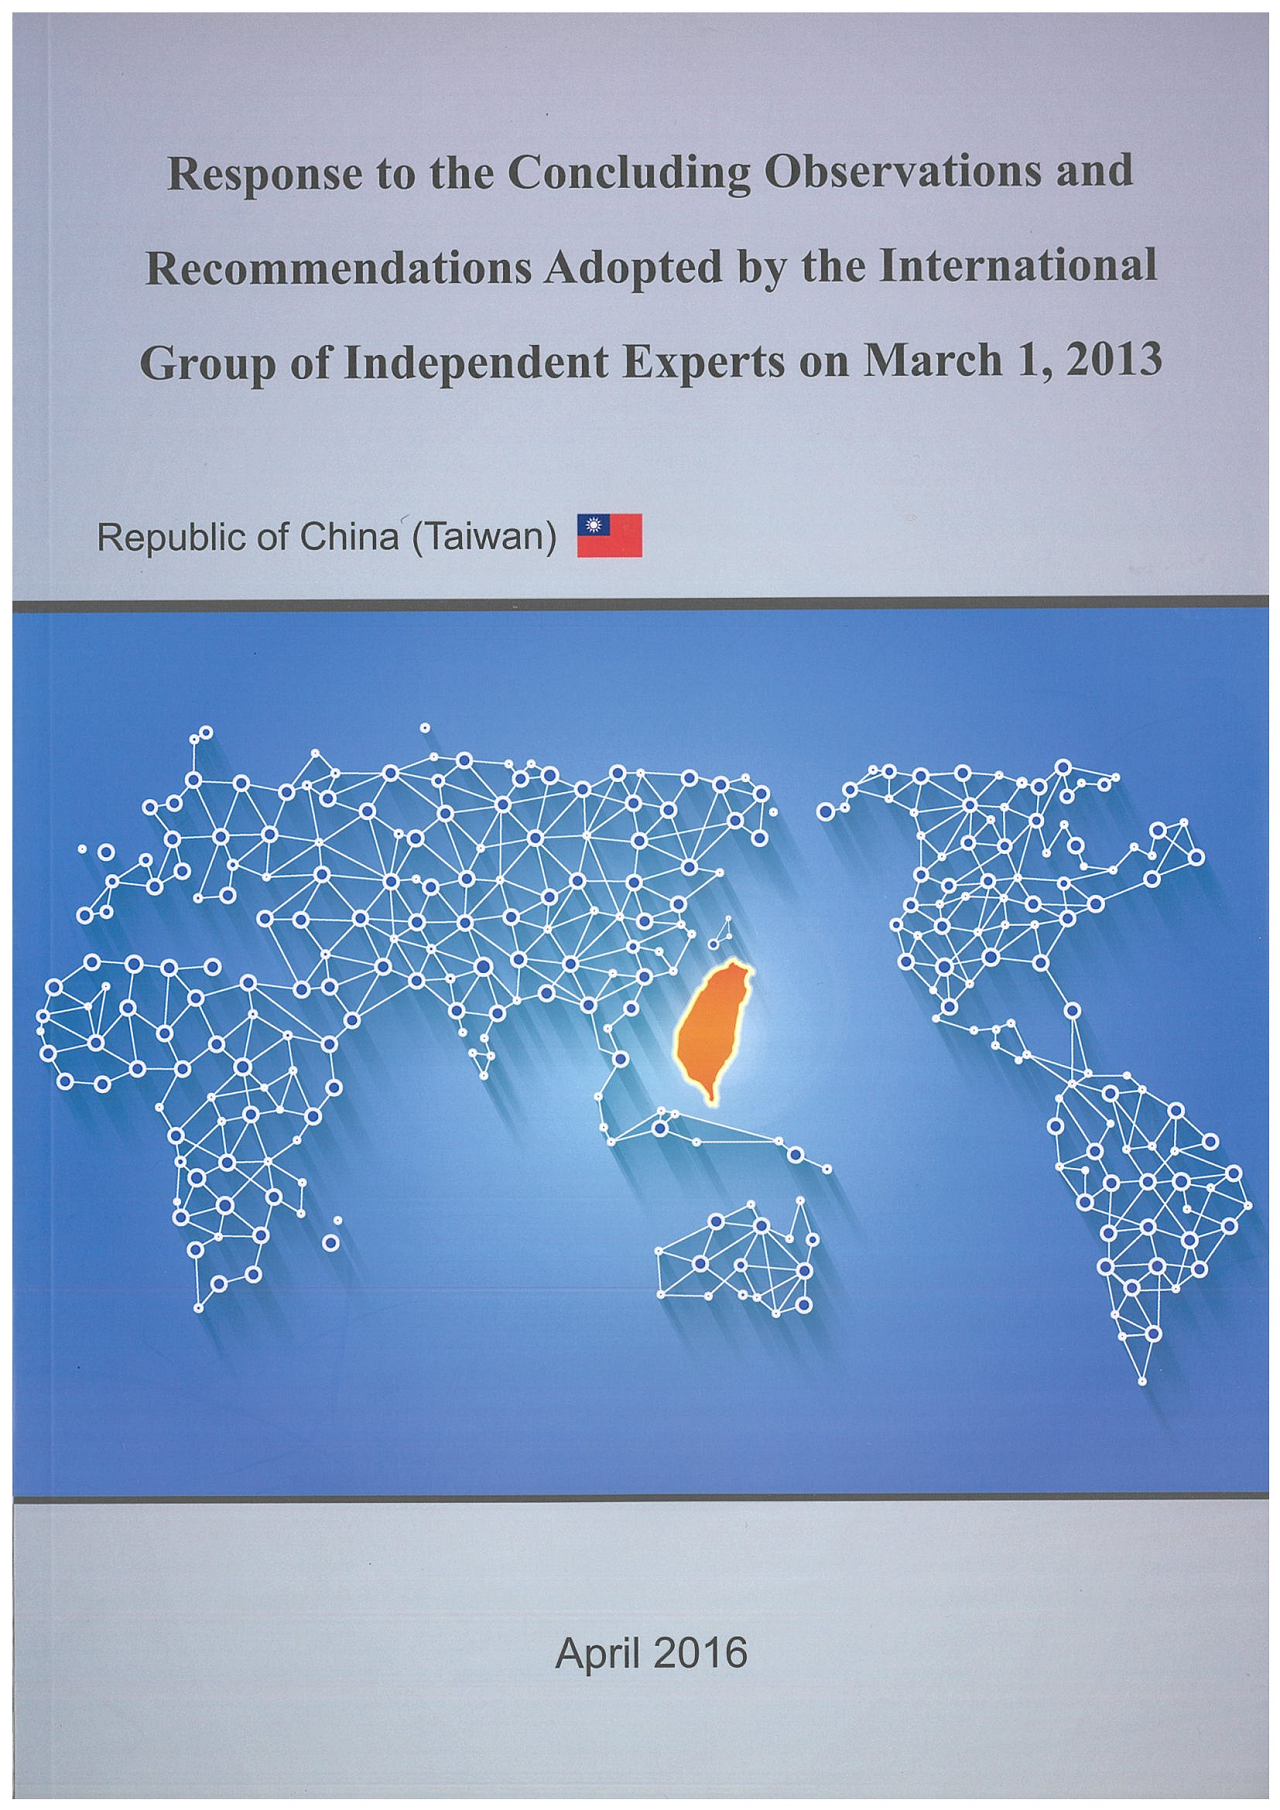 Response to the Concluding Observations and Recommendations Adopted by the International Group of Independent Experts for the Initial State Reports under the International Covenant on Civil and Politi